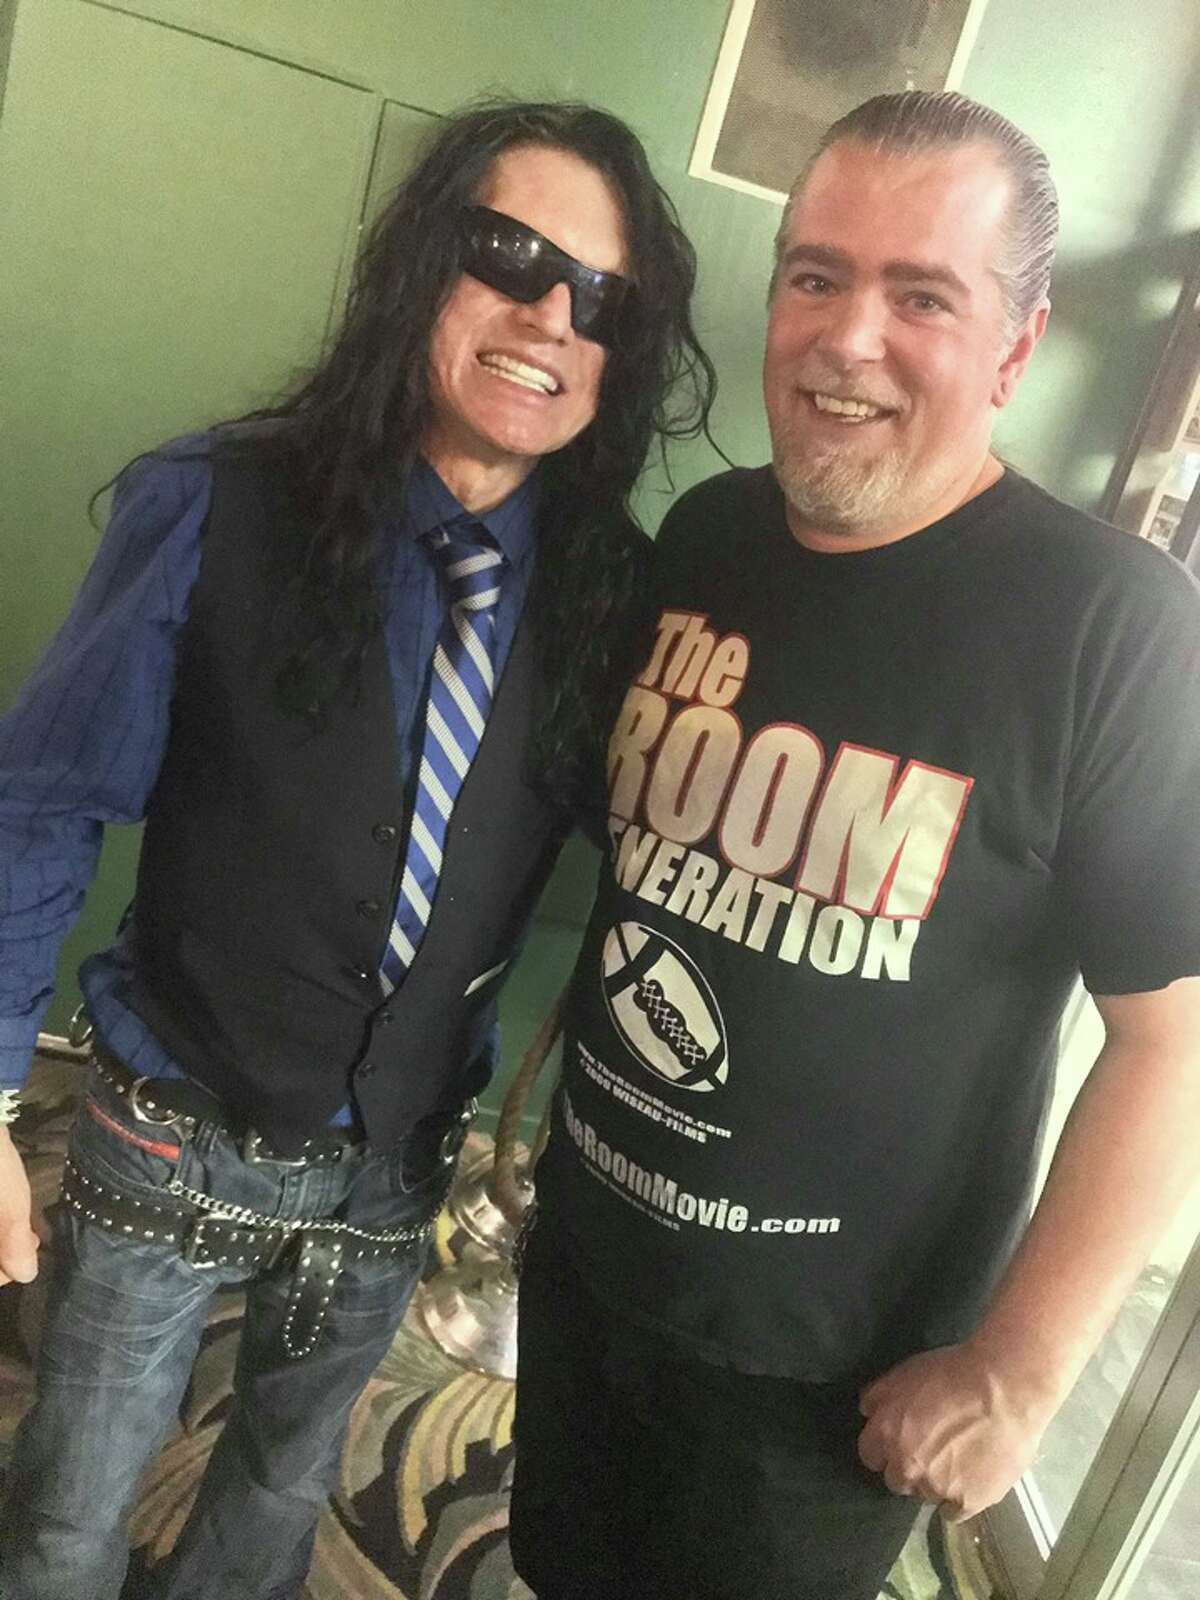 Michael Blythe poses next to Tommy Wiseau, who has appeared at the Clay Theatre on more than one occasion for his ritual screenings of